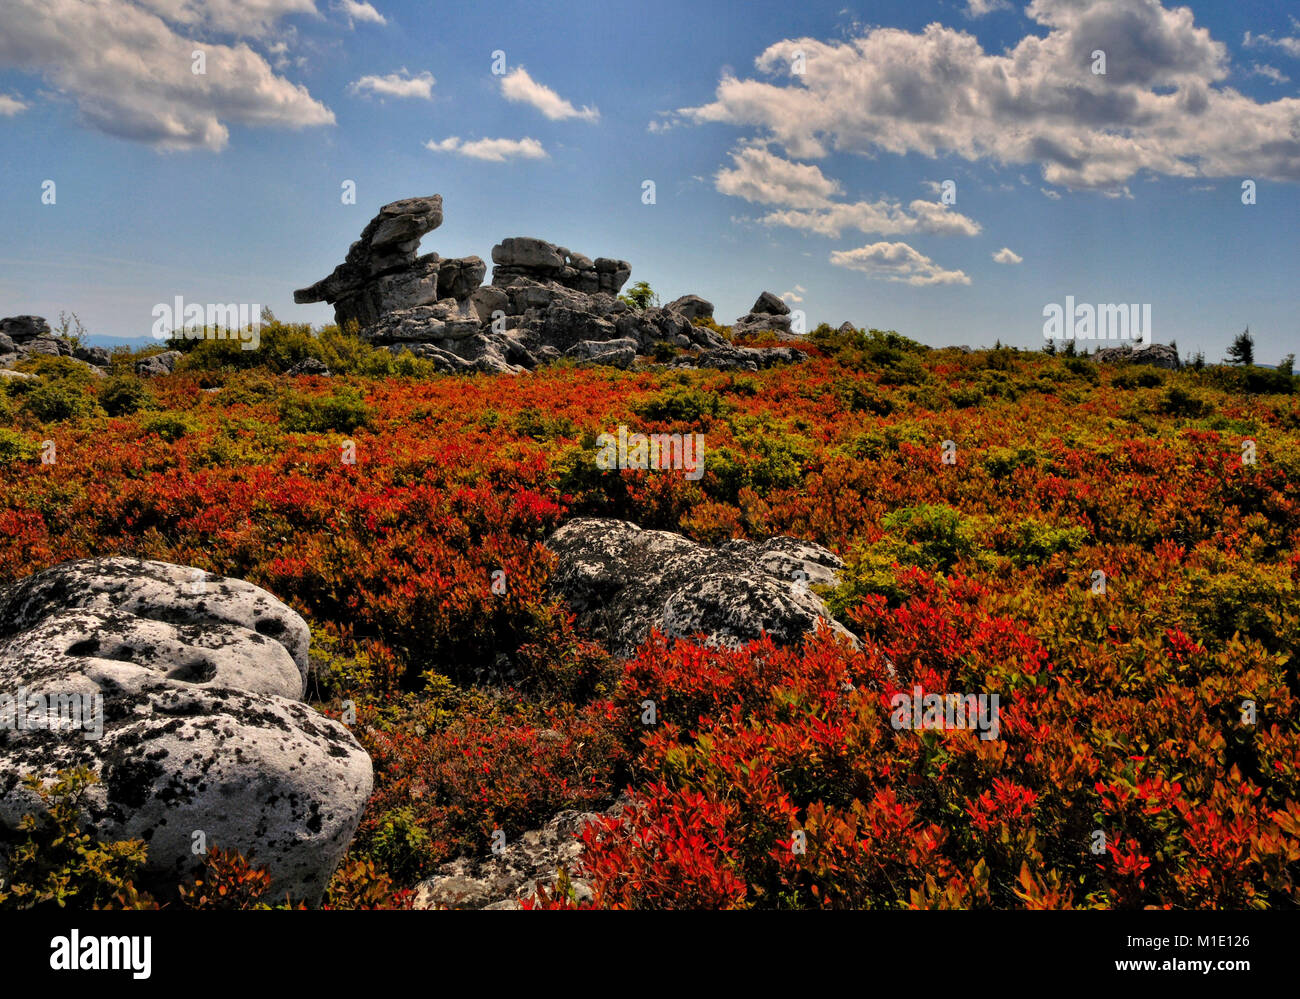 Dolly Sods Wilderness in autumn reds West Virginia - Stock Image